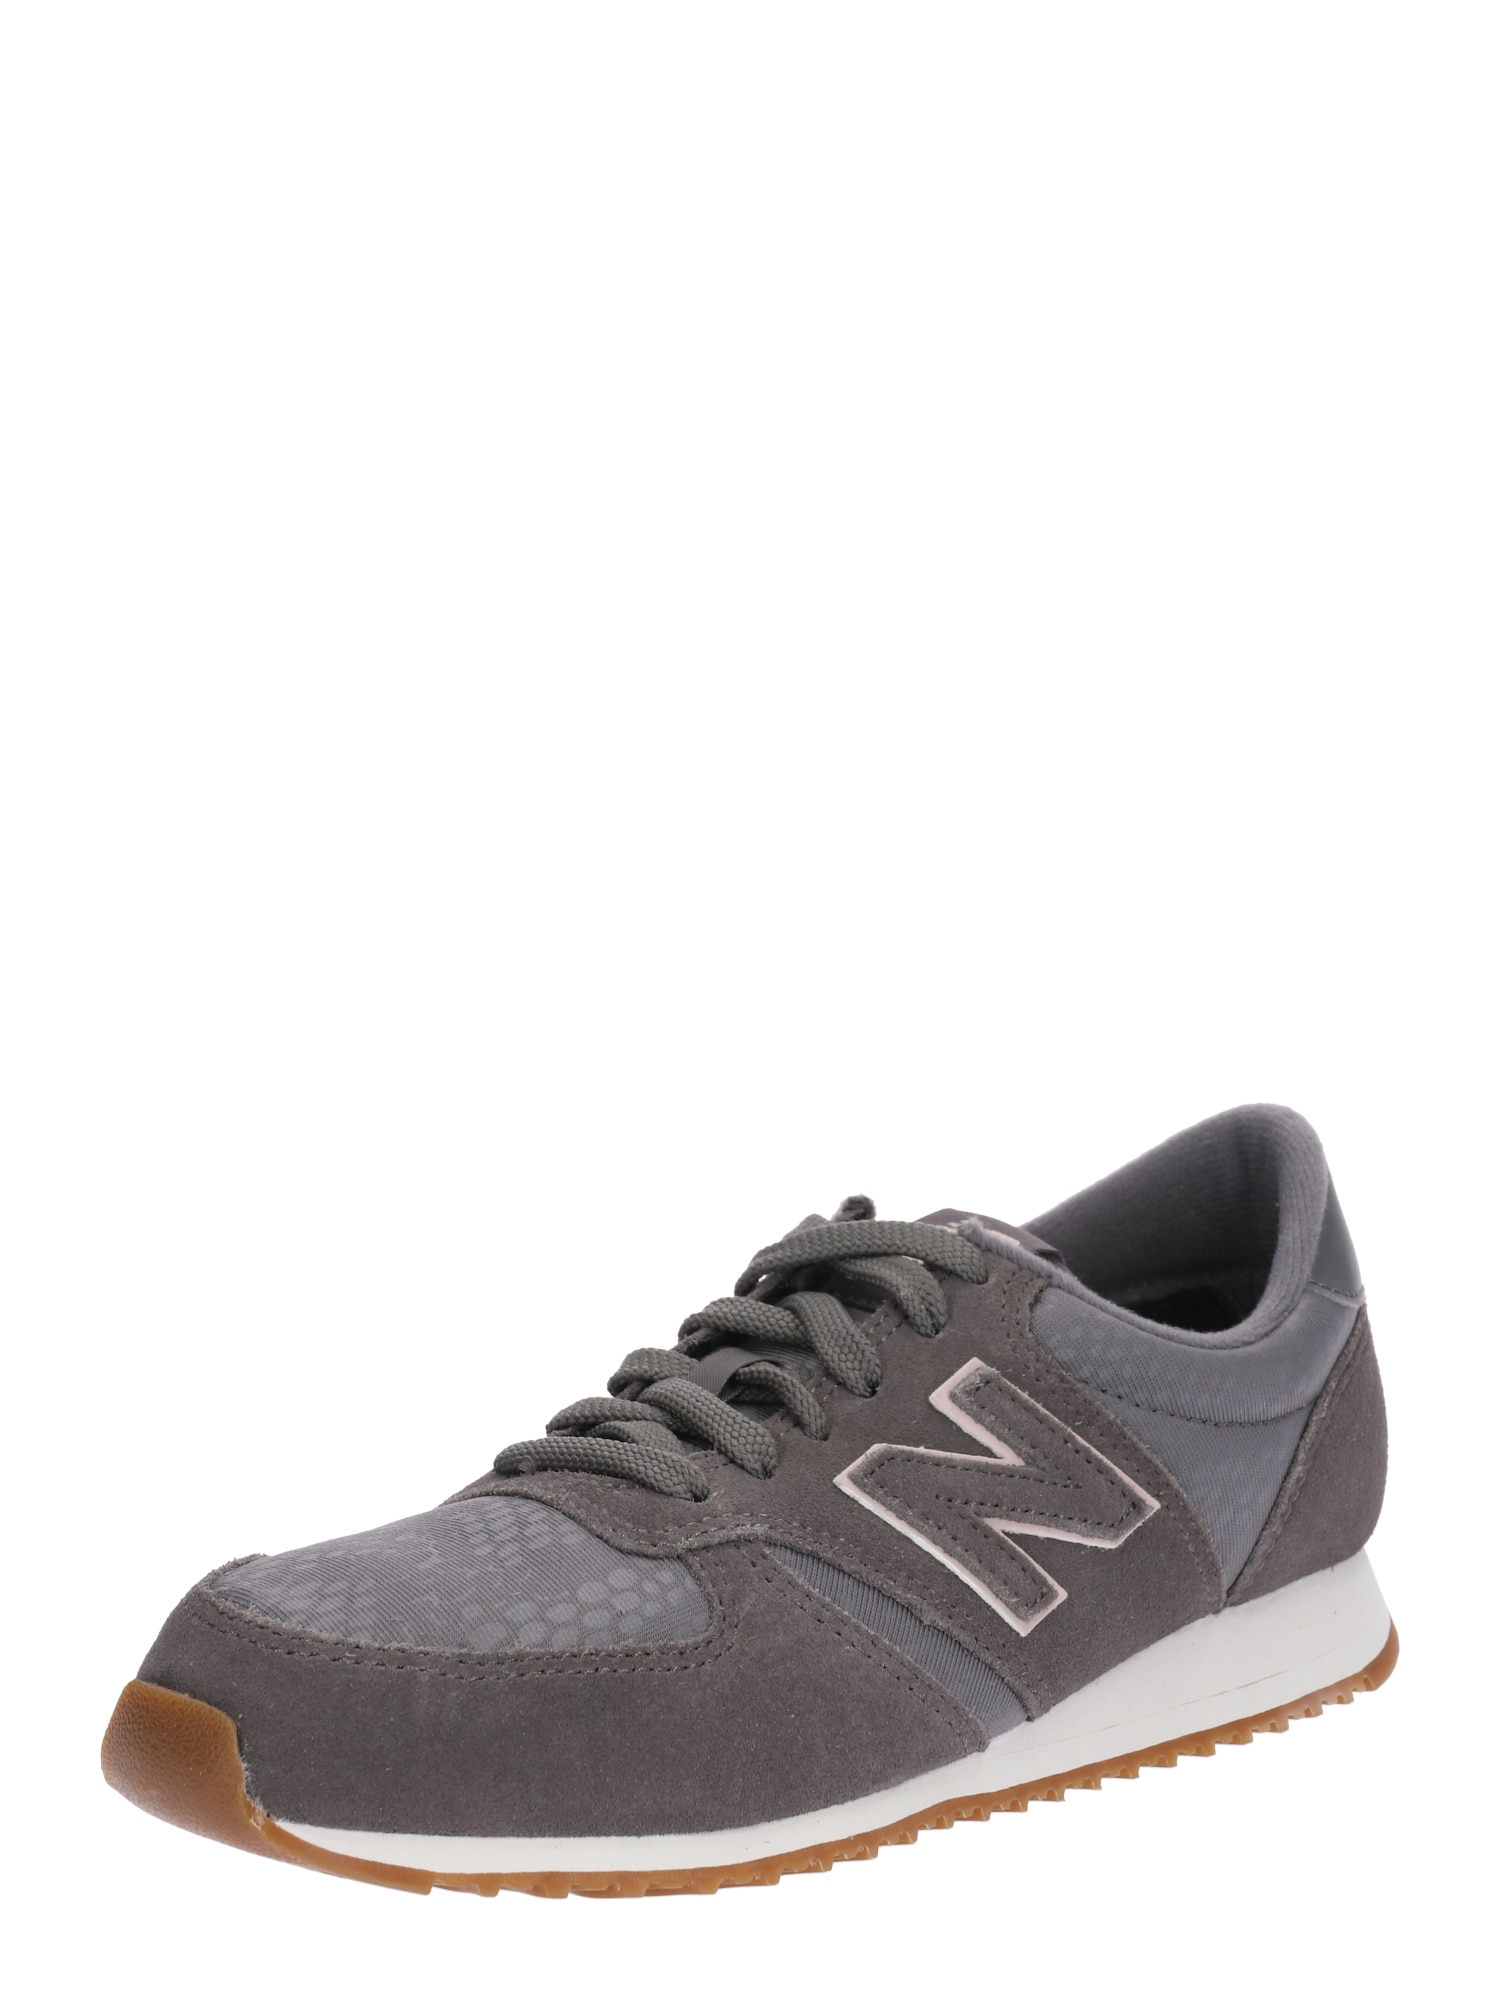 New Balance, Dames Sneakers laag 'WL420', donkergrijs